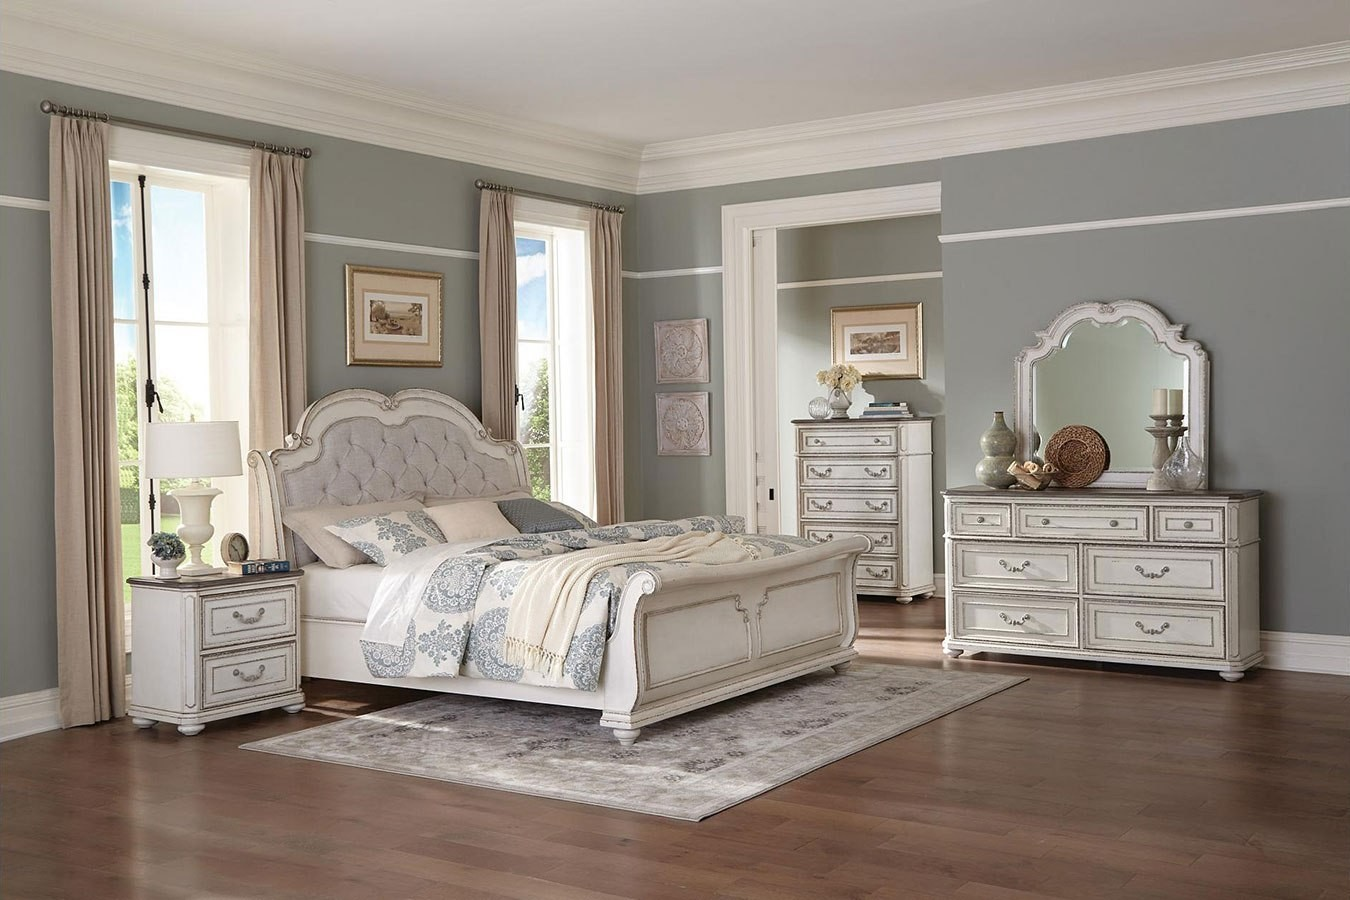 willowick lightly distressed sleigh bedroom set